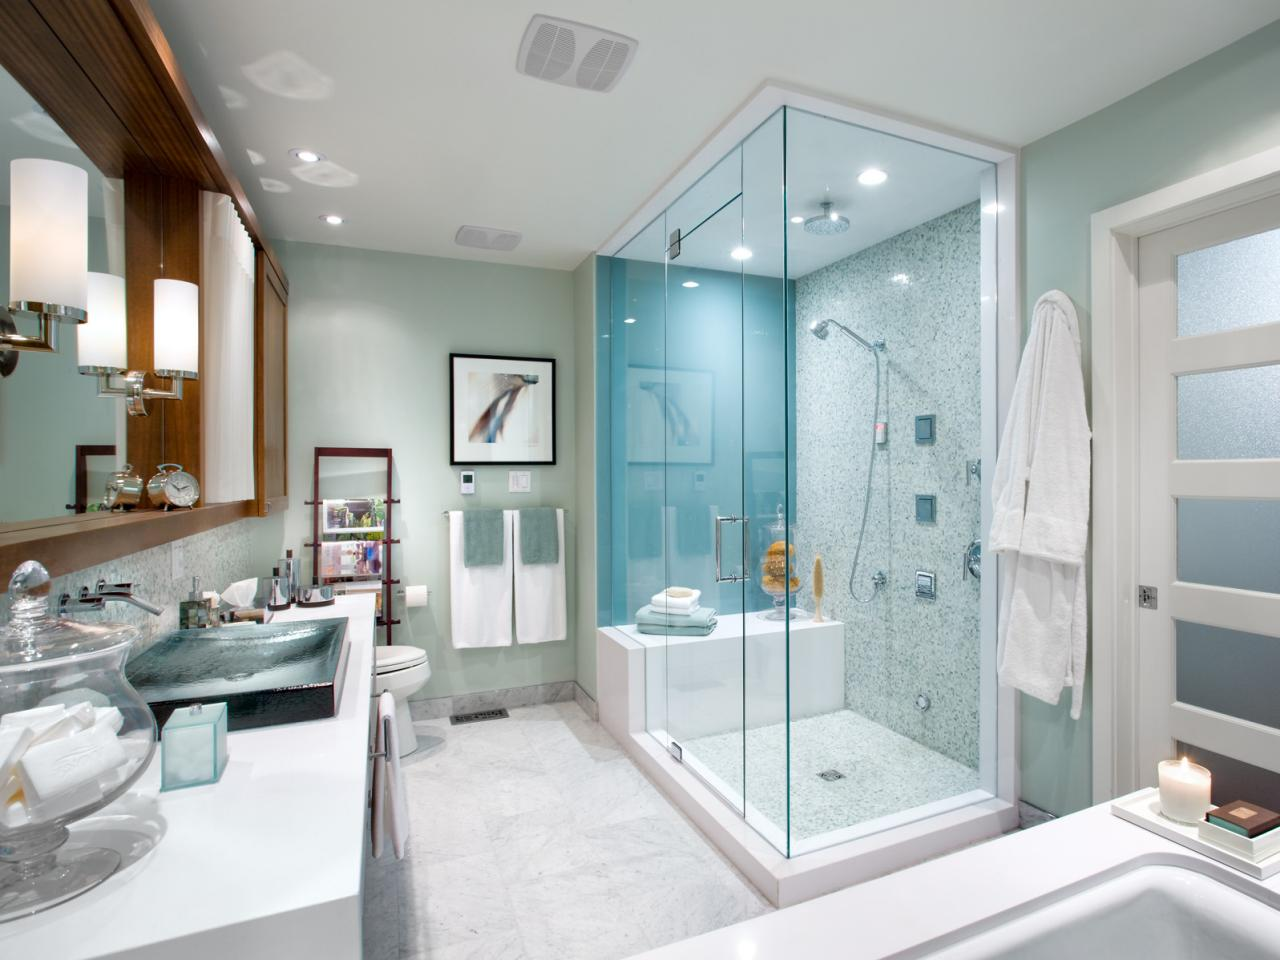 Featured Image of Bathroom Remodeling Ideas On A Budget That Are Budget Friendly